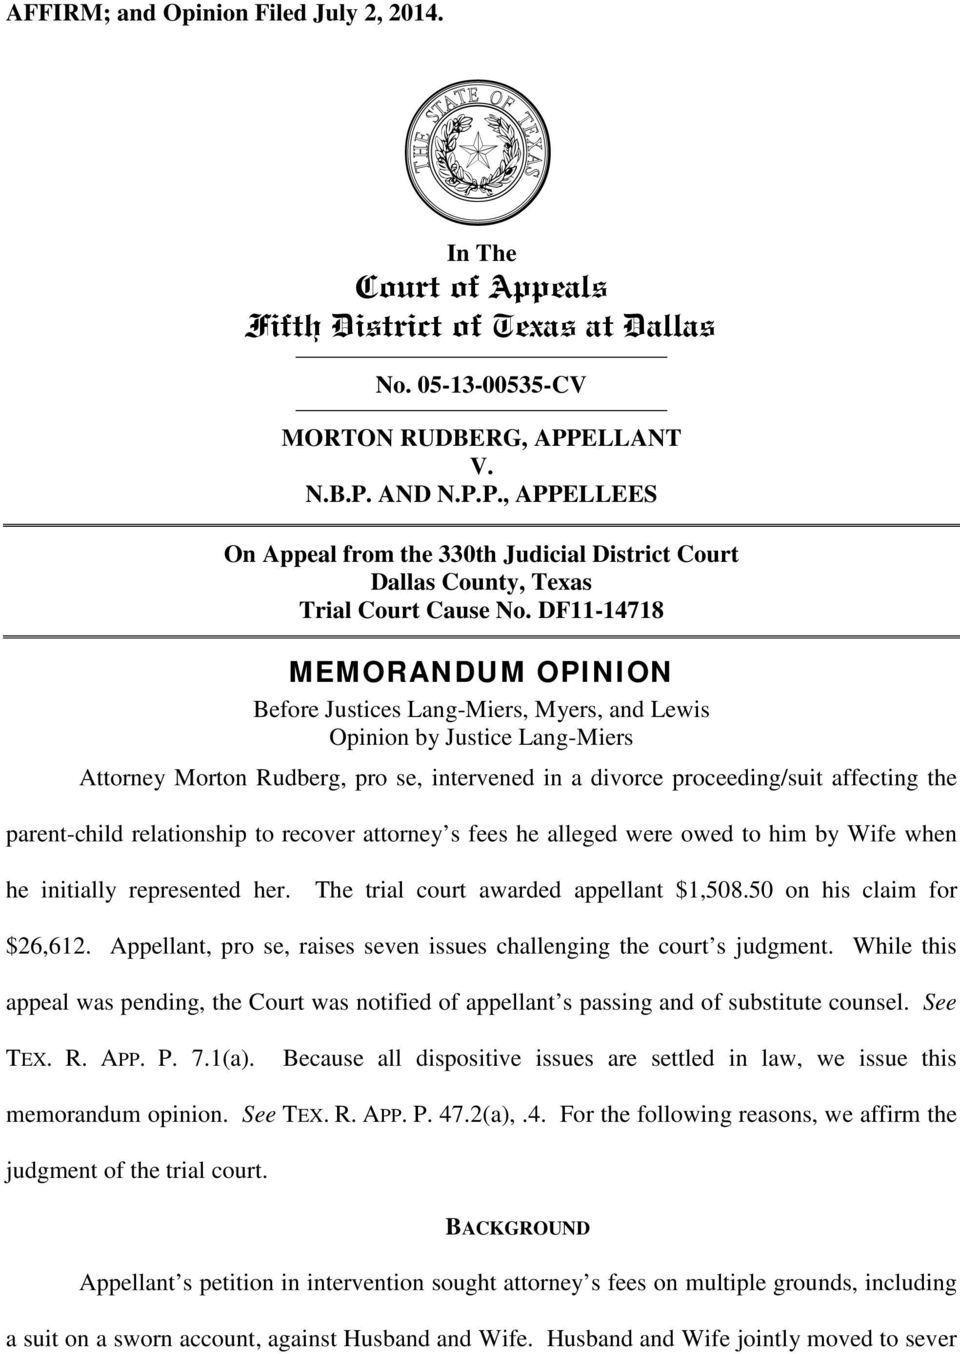 DF11-14718 MEMORANDUM OPINION Before Justices Lang-Miers, Myers, and Lewis Opinion by Justice Lang-Miers Attorney Morton Rudberg, pro se, intervened in a divorce proceeding/suit affecting the